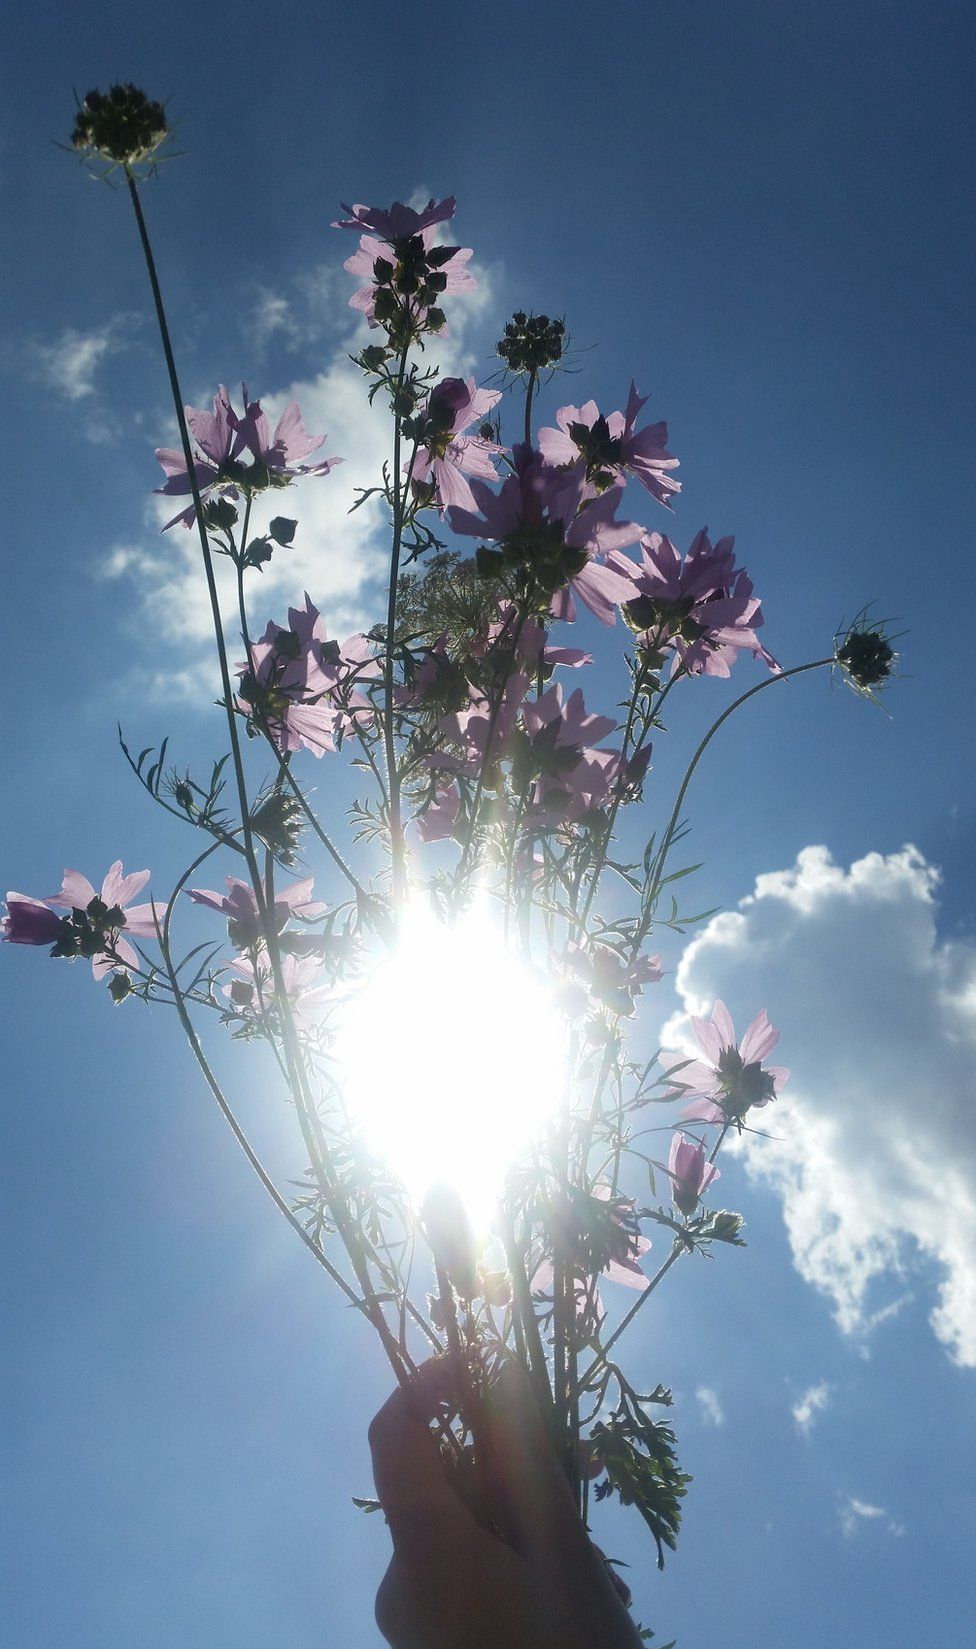 A hand holds a bouquet of flowers up against the sky